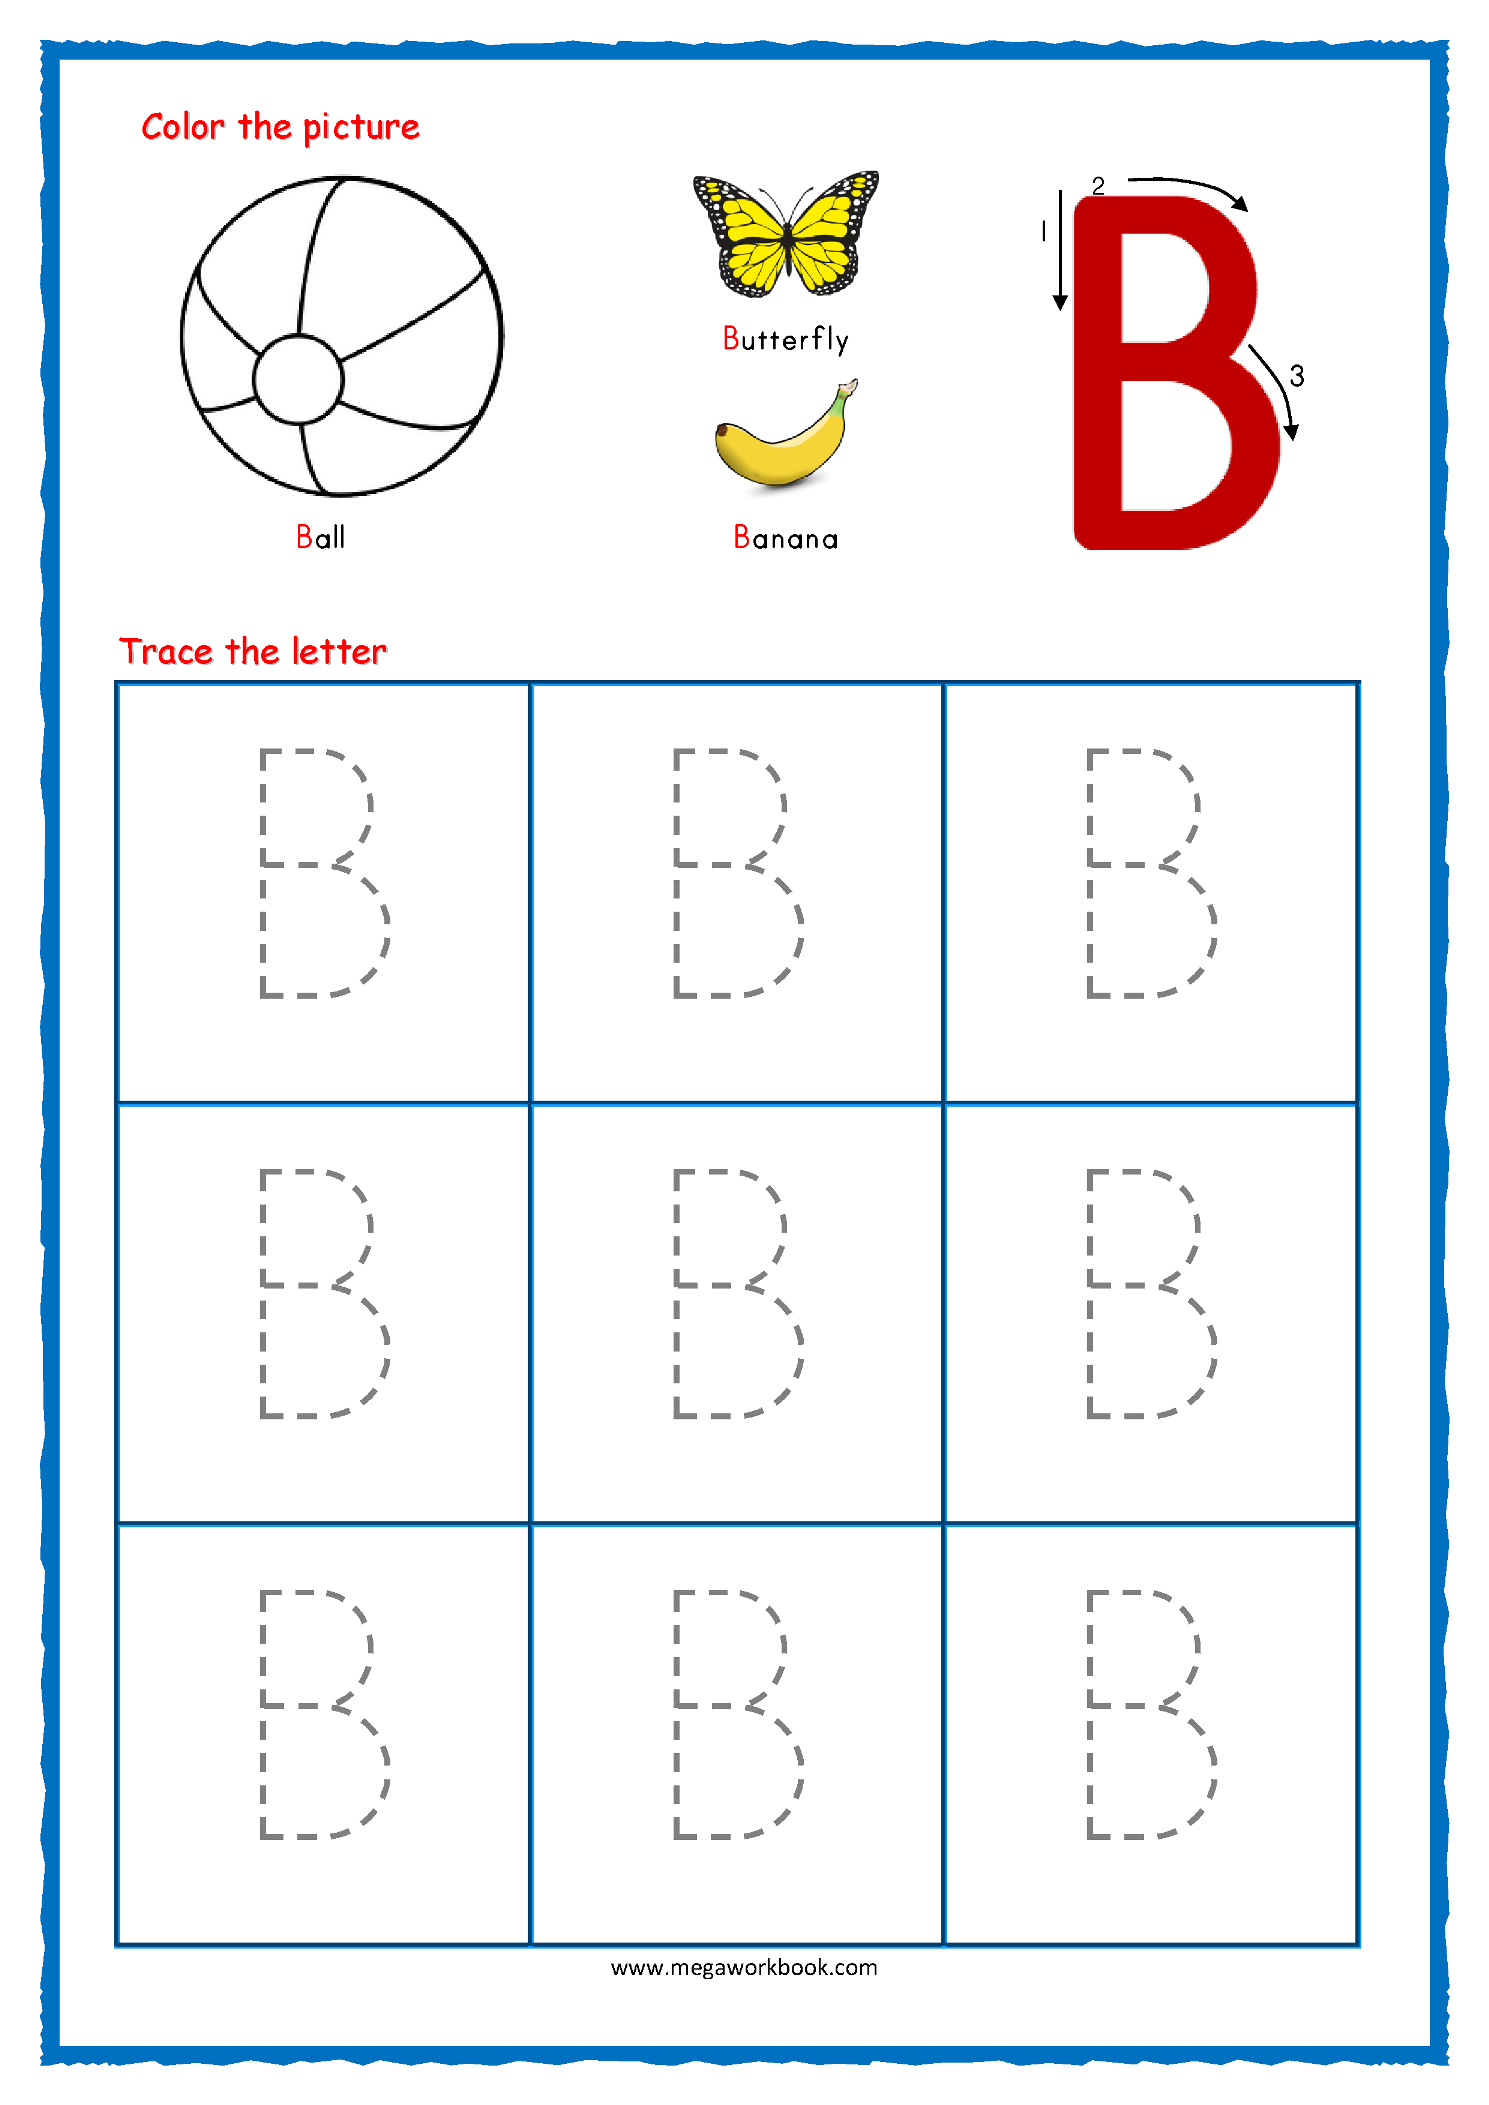 Coloring Book : Letter Tracingts Free Printable Coloring intended for Big Letters Alphabet Tracing Sheets